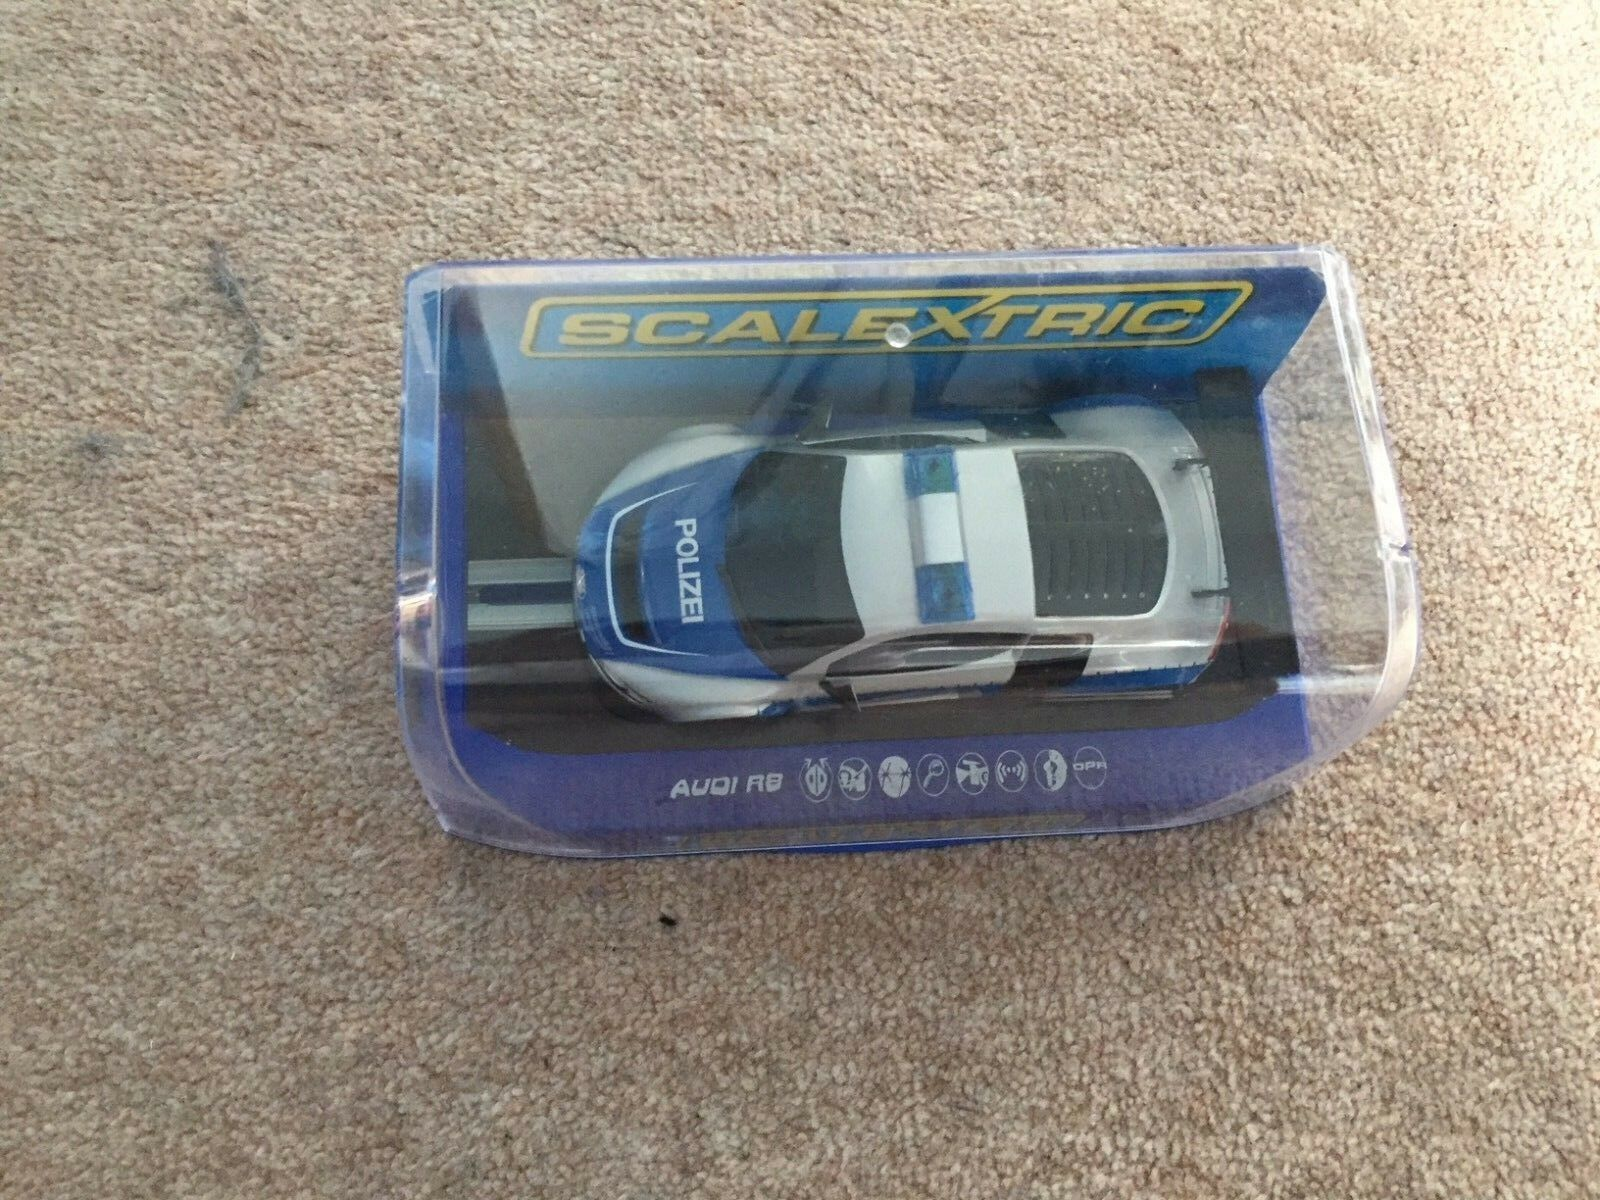 1 32 scale Scalextric Audi R8 Police Car bluee and White (see description)